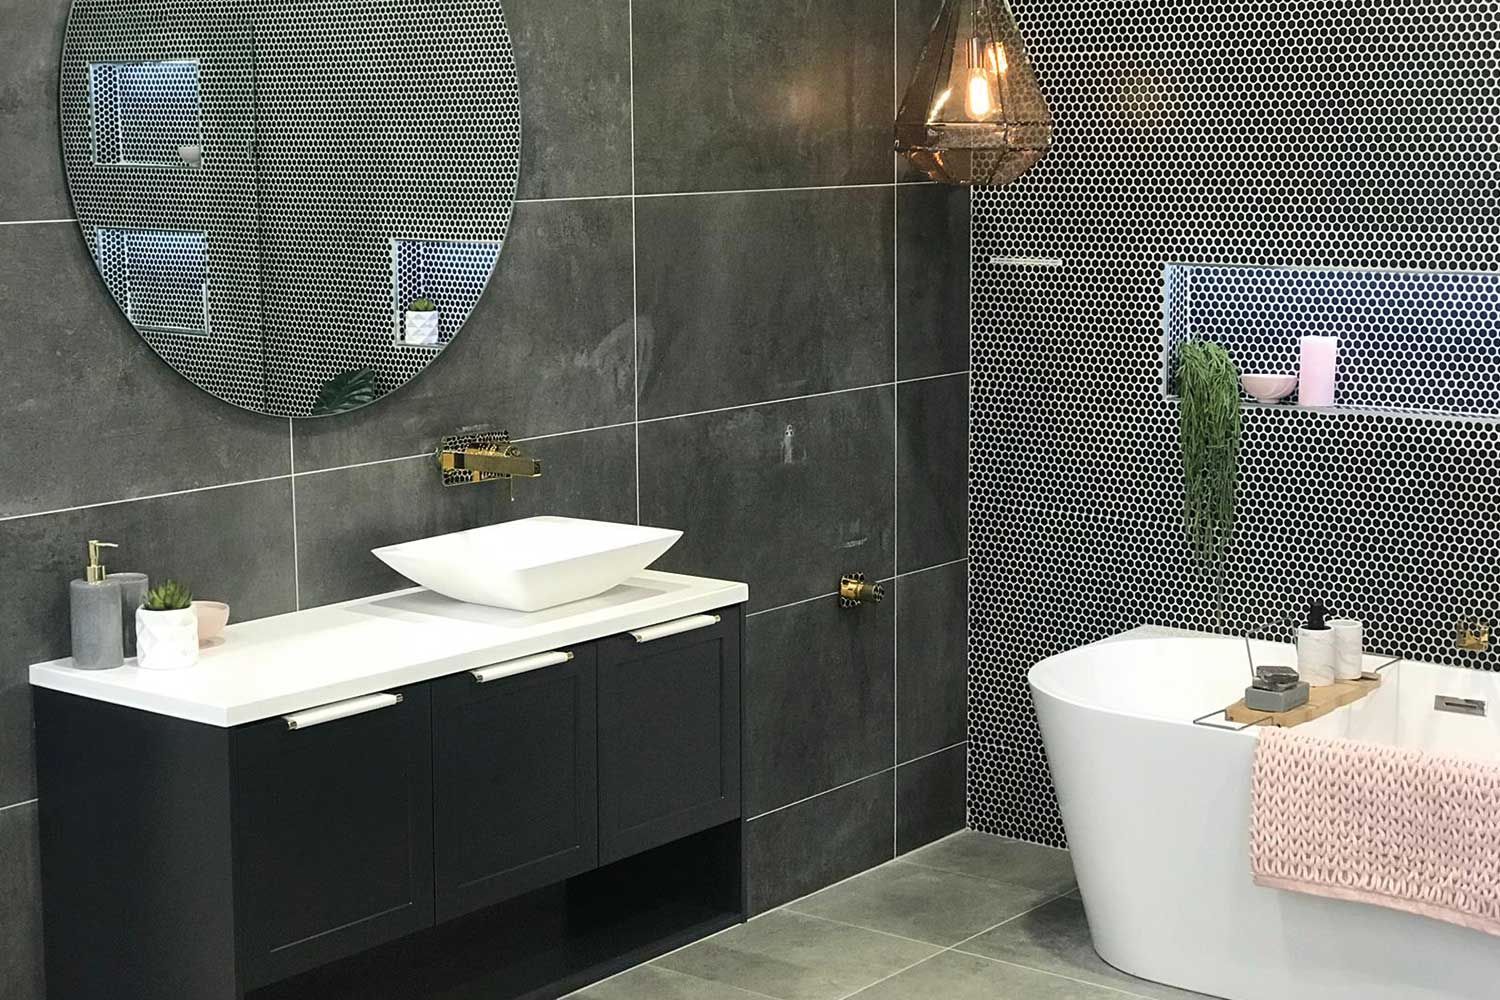 The Latest Modern Bathroom Designs To Add Luxe On A Budget Home Beautiful Magazine Australia